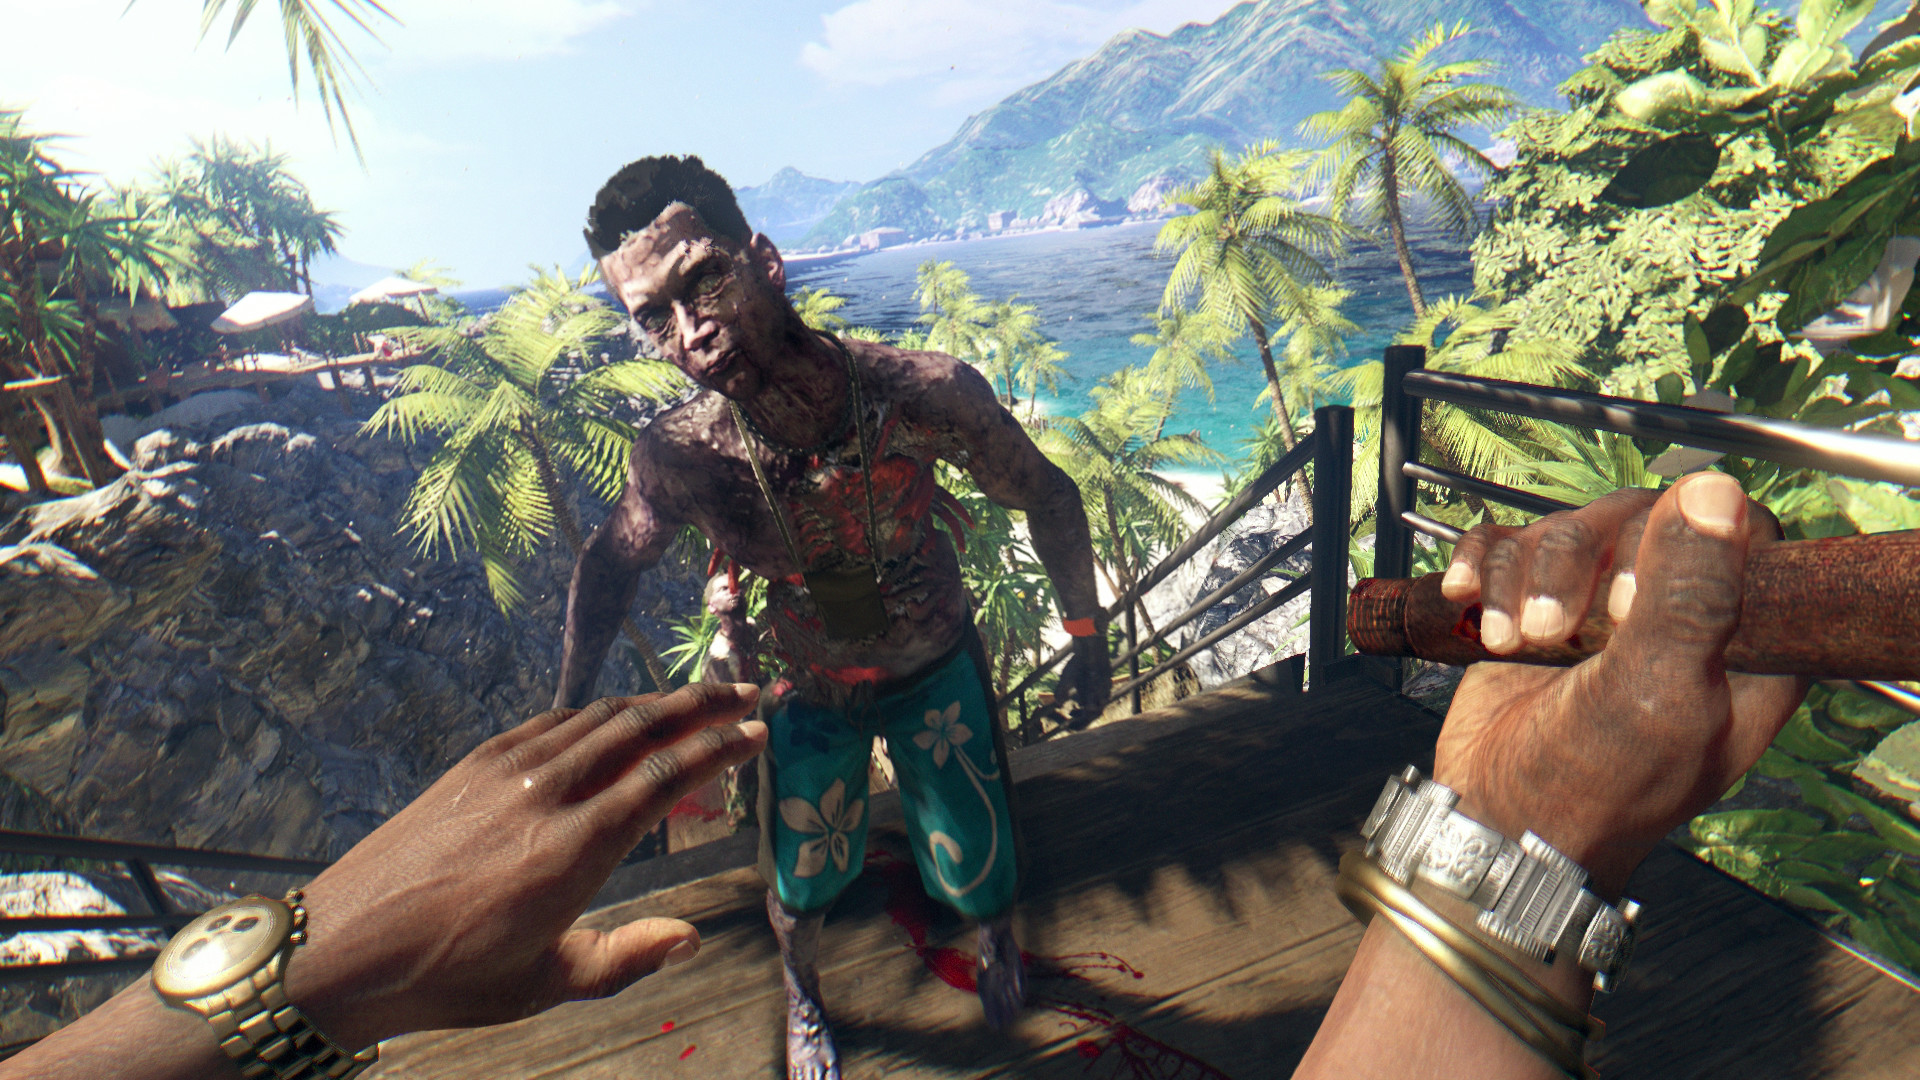 Dead Island Definitive Edition ISO PC GAME FREE DOWNLOAD | Skidrow Games & Reloaded